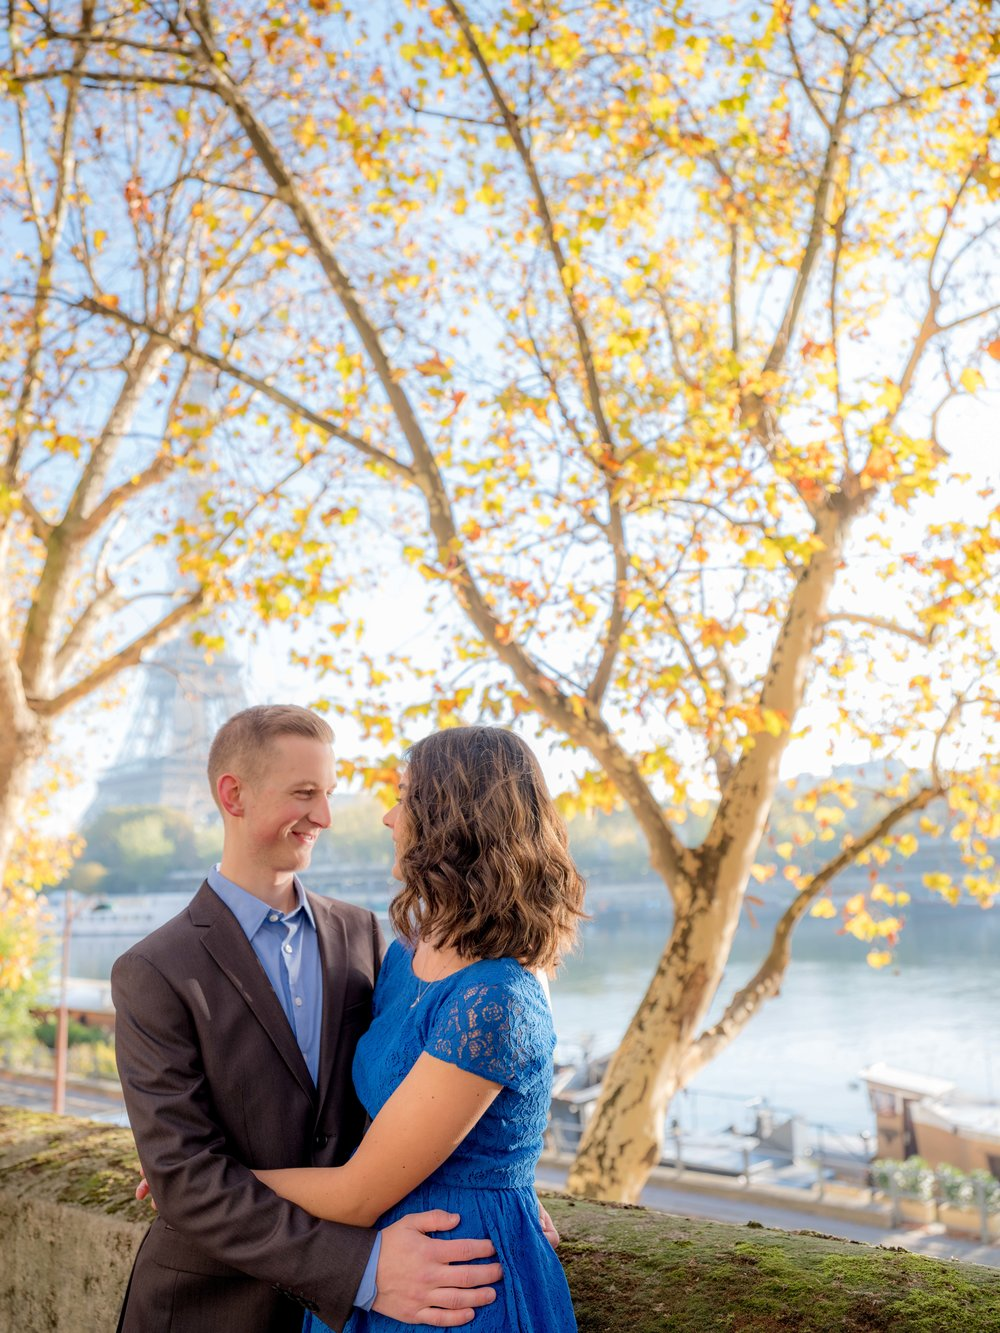 romantic young couple engagement in autumn with view of eiffel tower